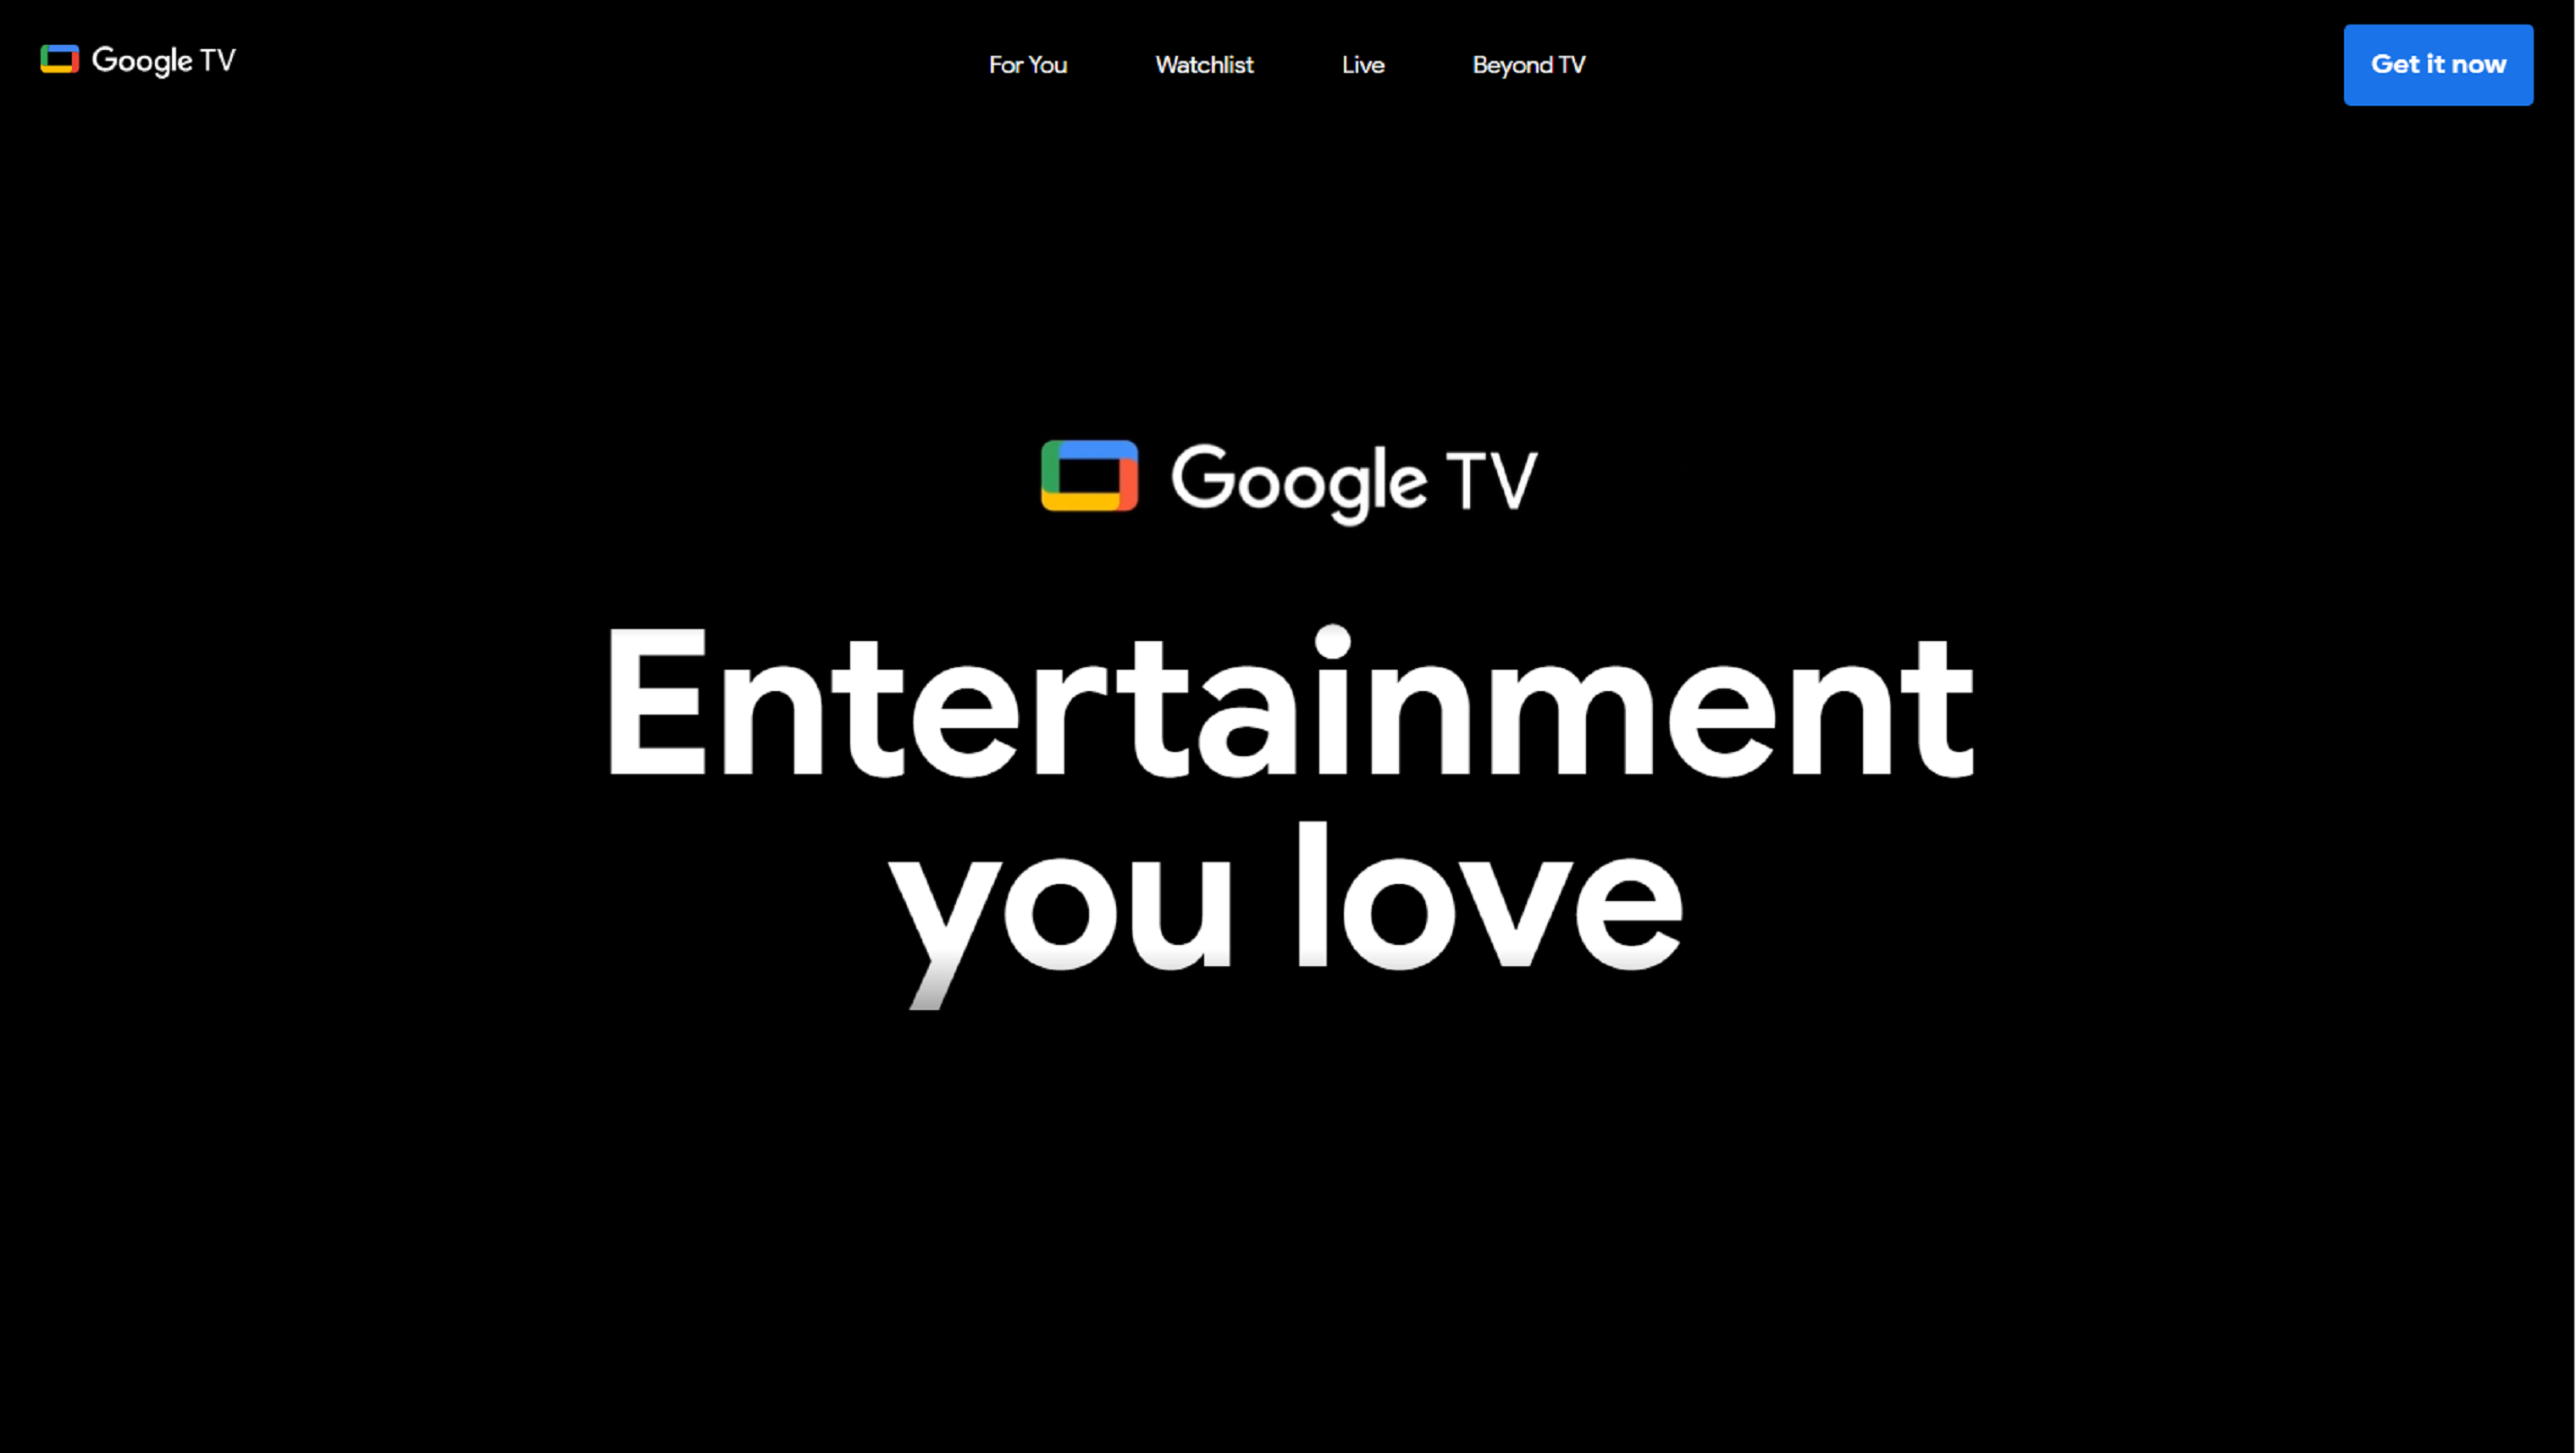 Google goes big with the launch of Google TV on a .brand